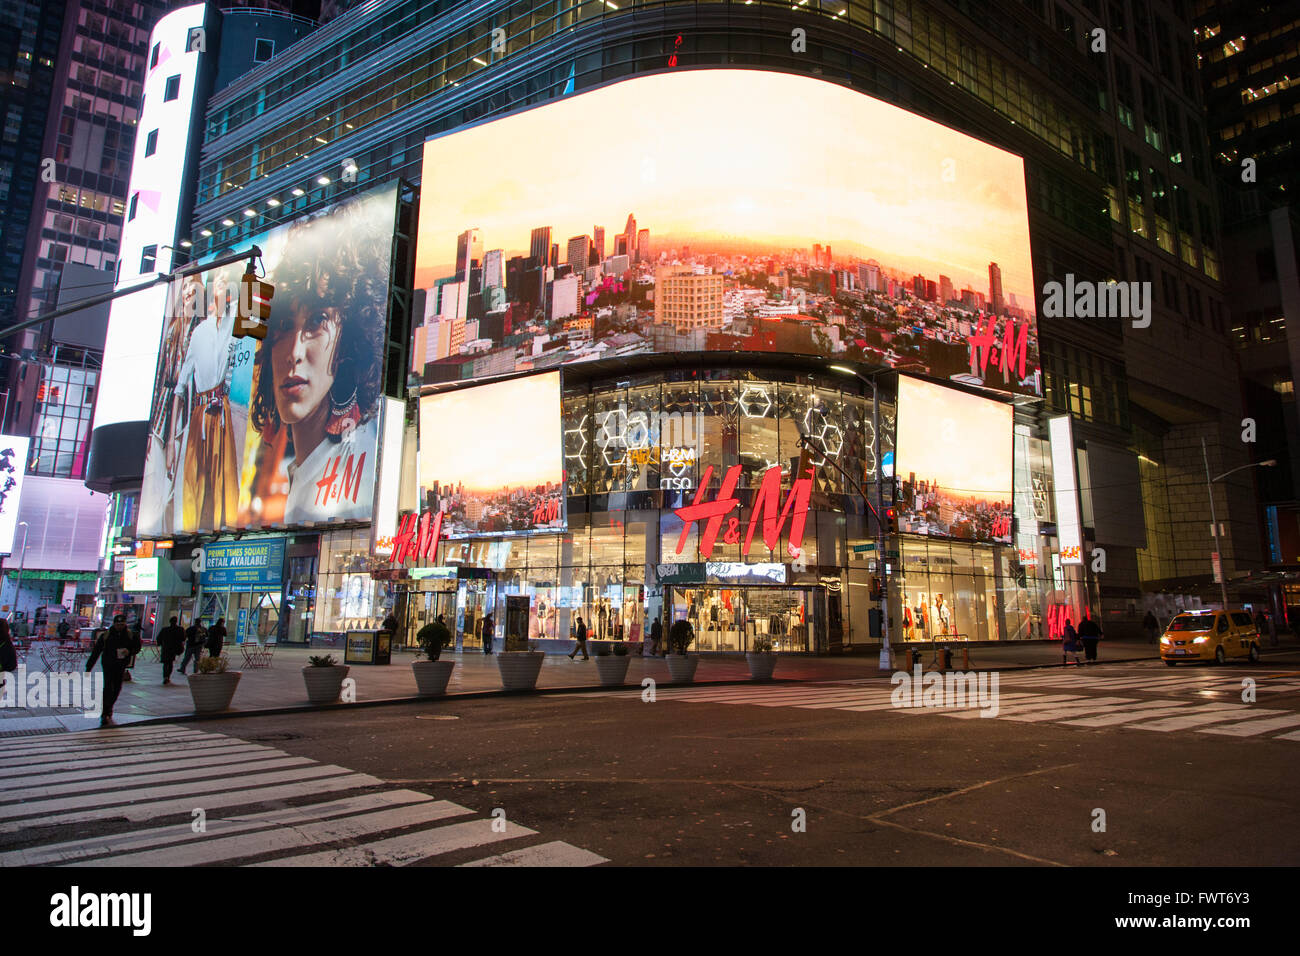 H&M store at night, Times Square, New York City, United ...